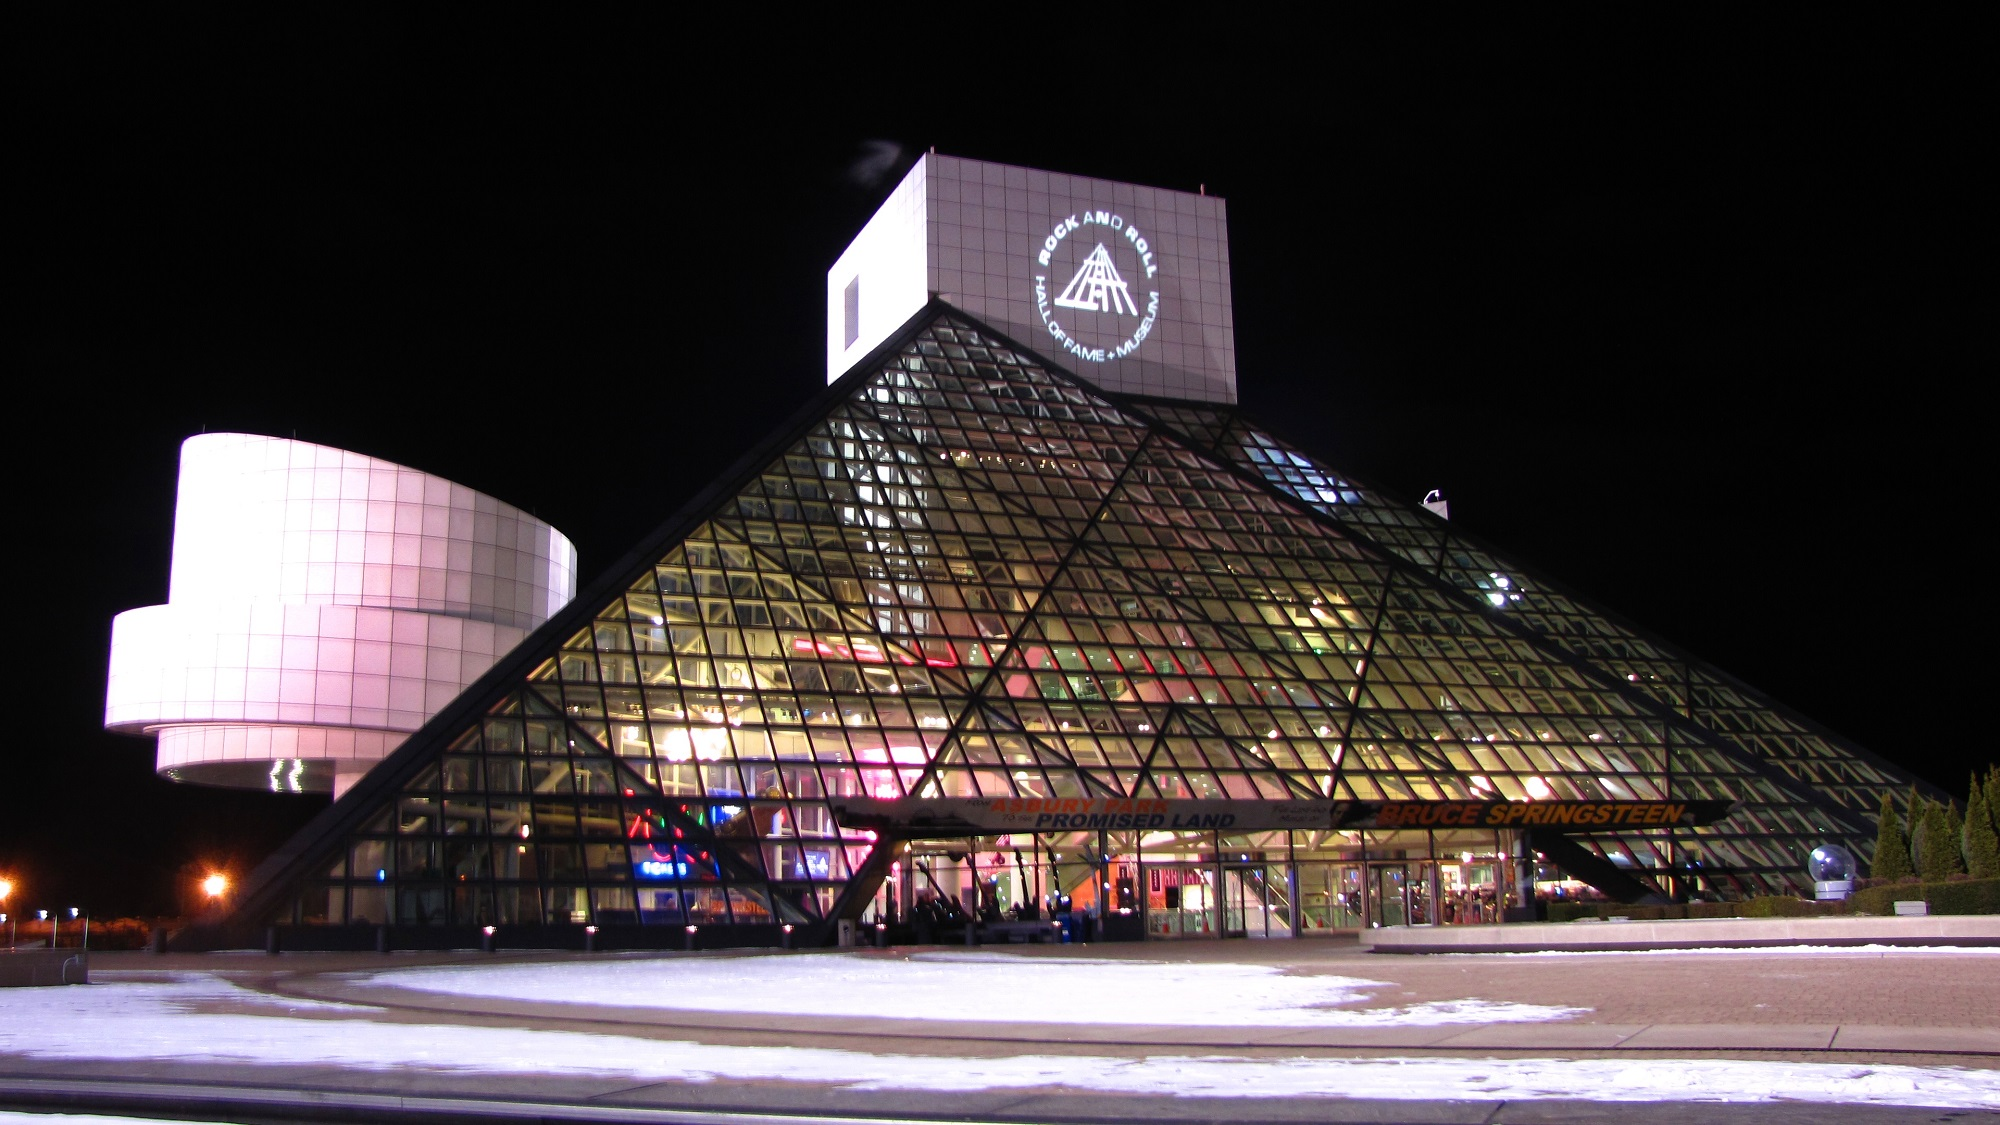 Rock Hall Open To Public During RNC For Free?